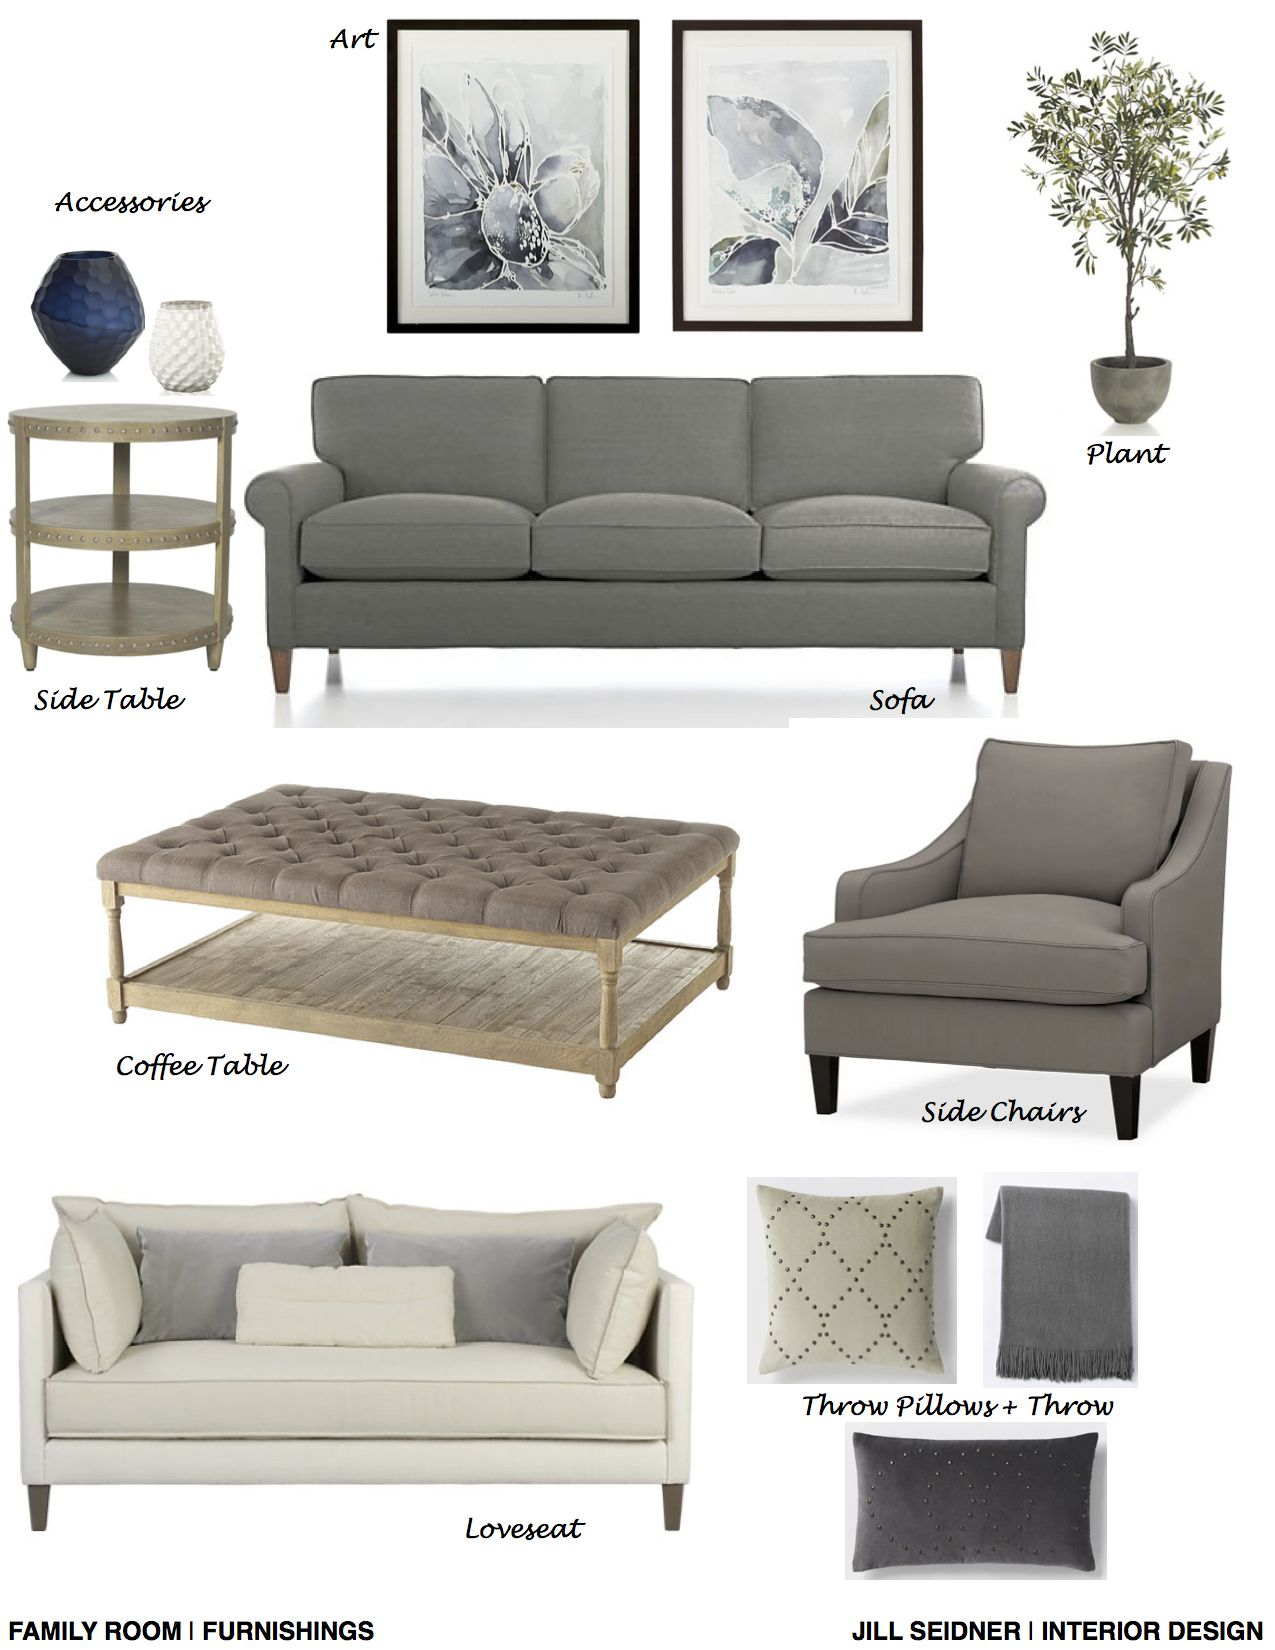 Columbus, GA Online Design Project Family Room Furnishings Concept ...